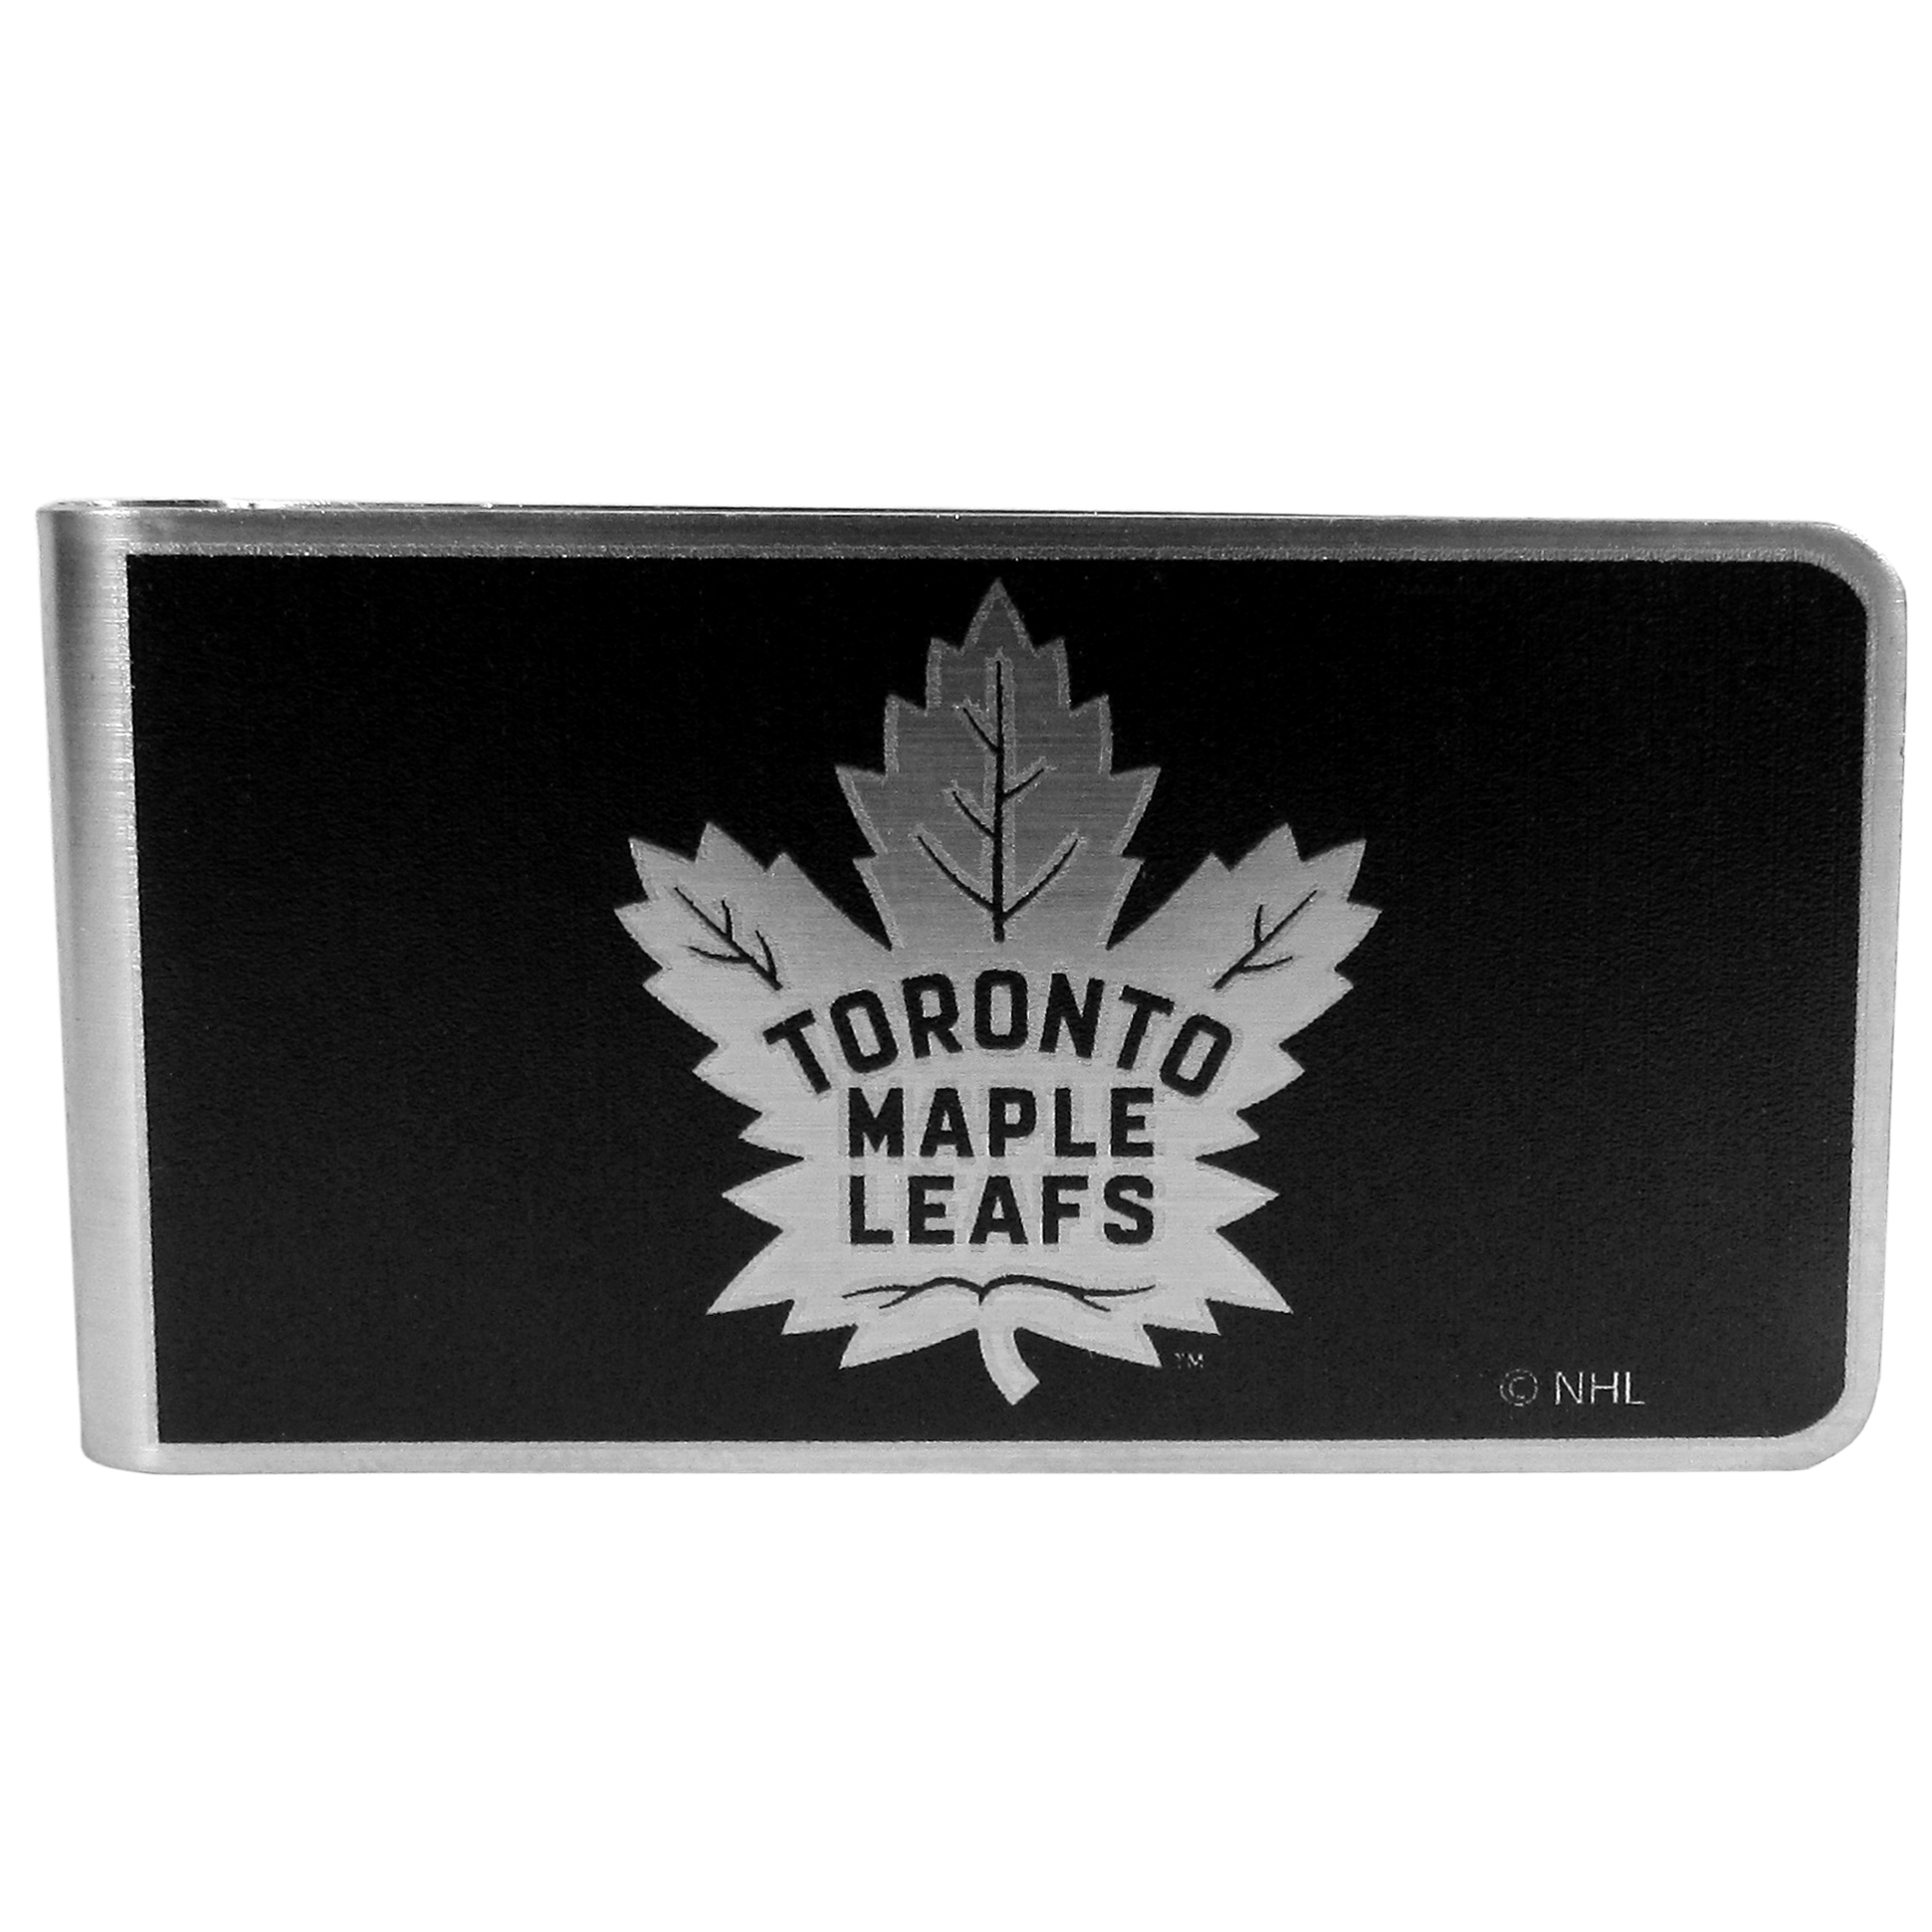 Toronto Maple Leafs® Black and Steel Money Clip - Our monochromatic steel money clips have a classic style and superior quality. The strong, steel clip has a black overlay of the Toronto Maple Leafs® logo over the brushed metal finish creating a stylish men's fashion accessory that would make any fan proud.